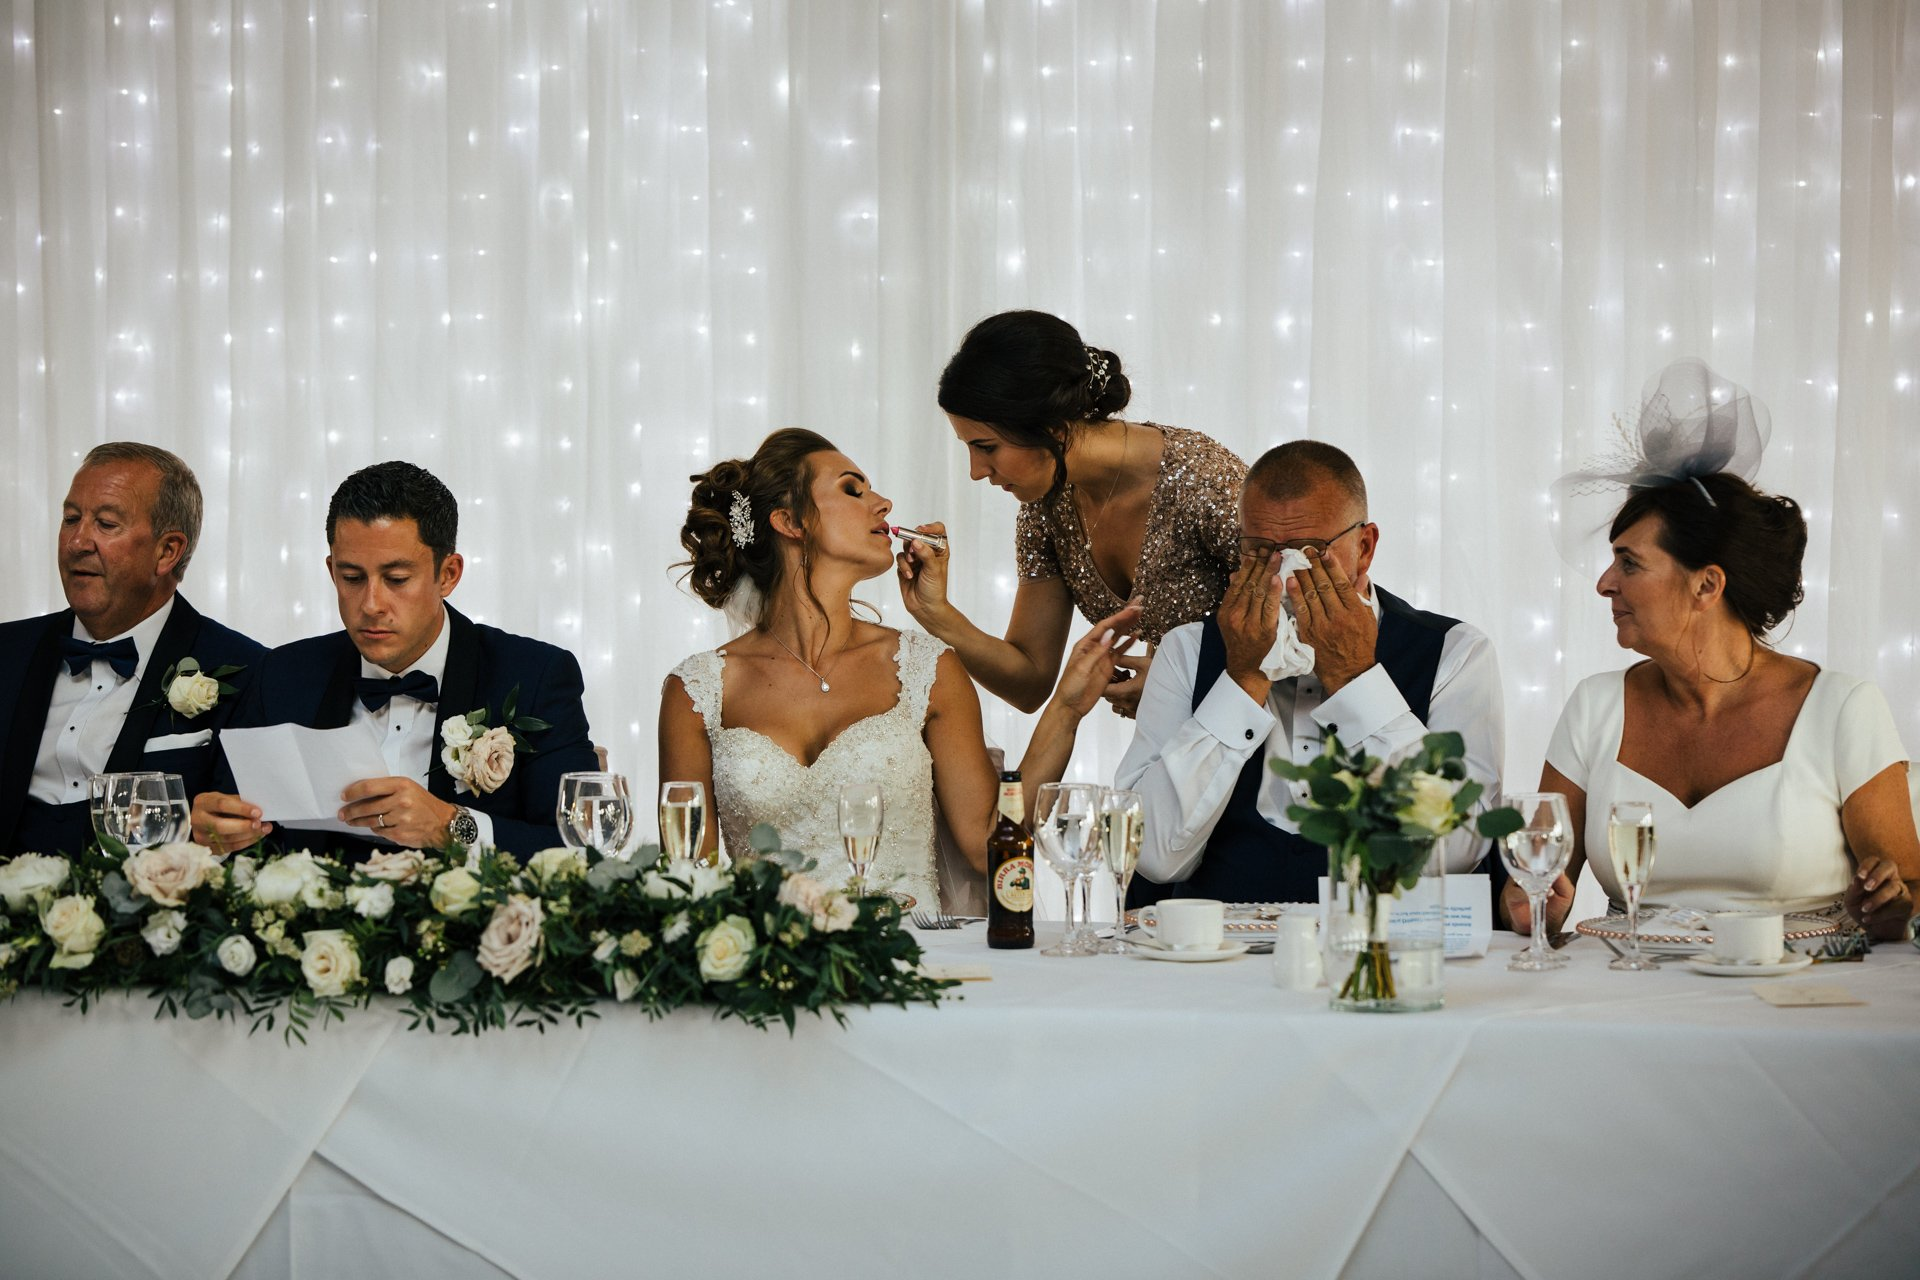 Bridal party seated at top table preparing for speeches